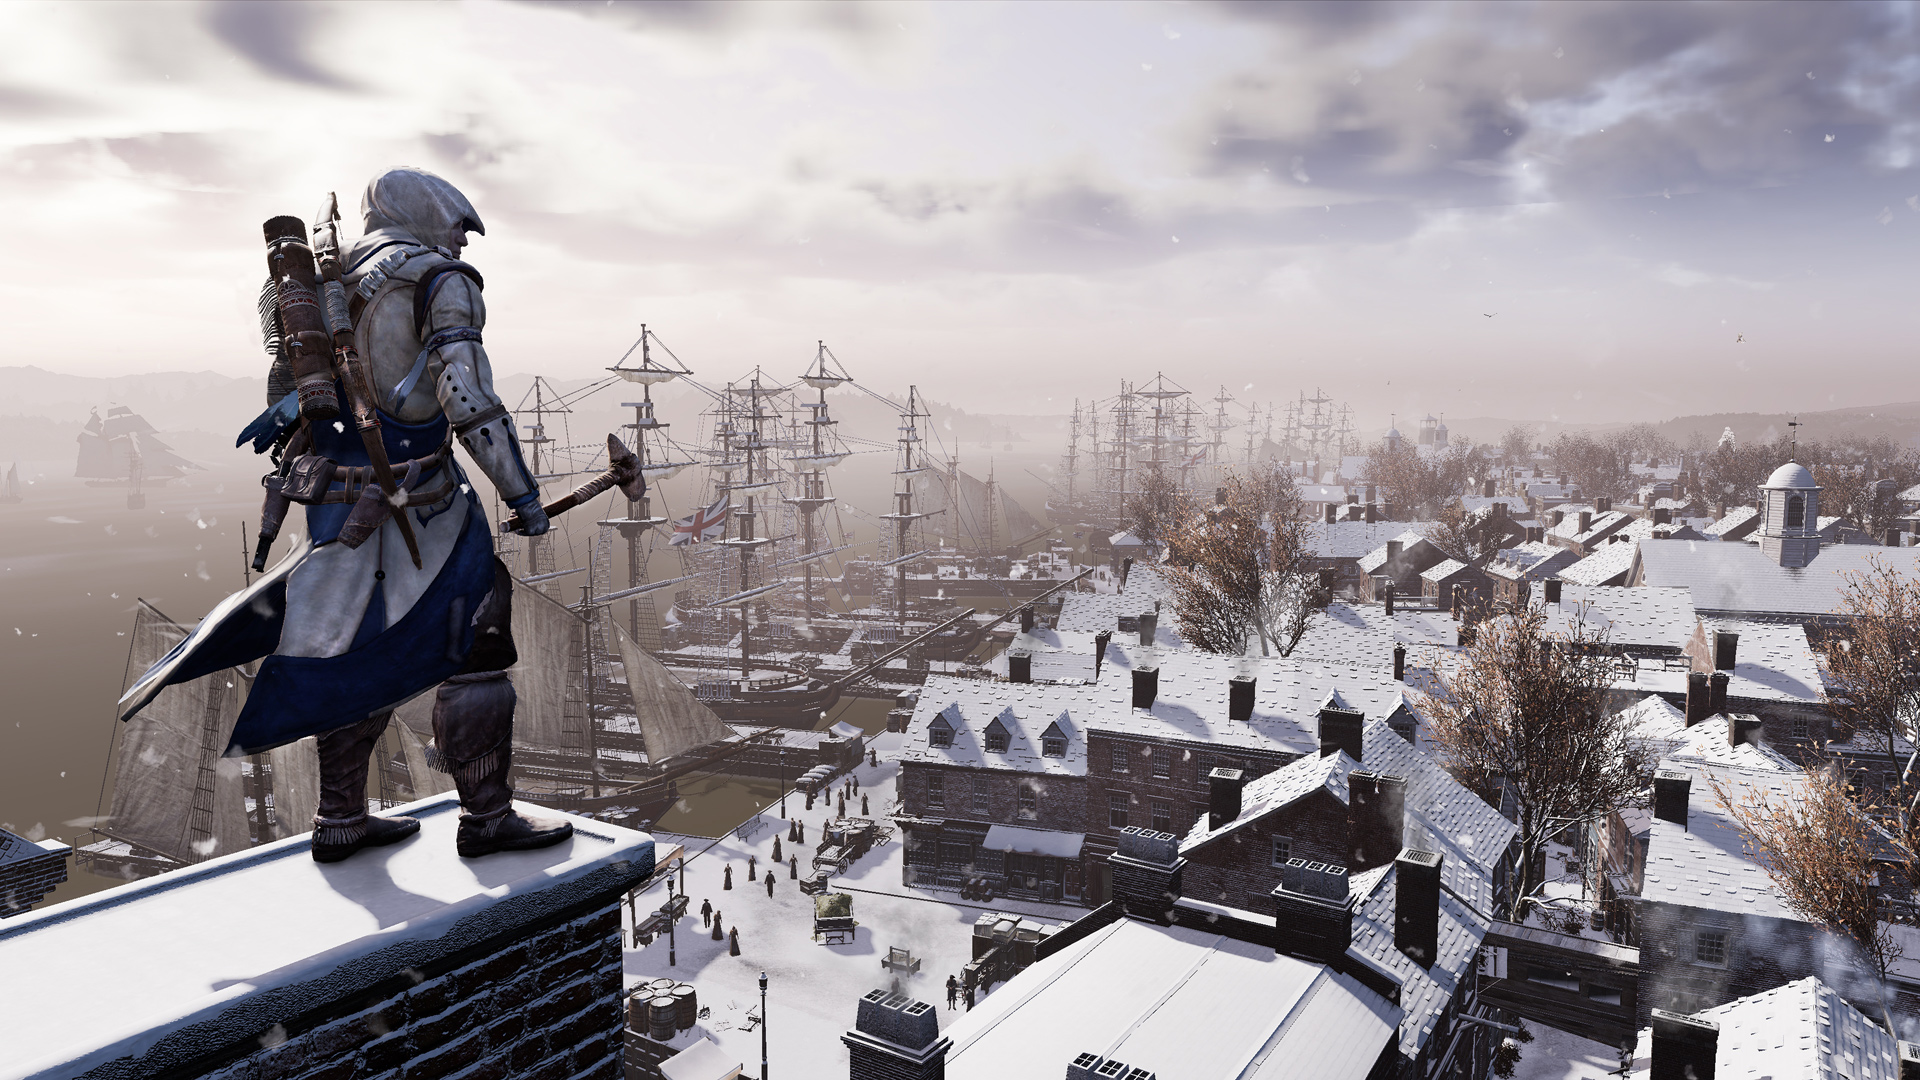 Assassin's Creed 3 Remastered: How To Download It For Free Through